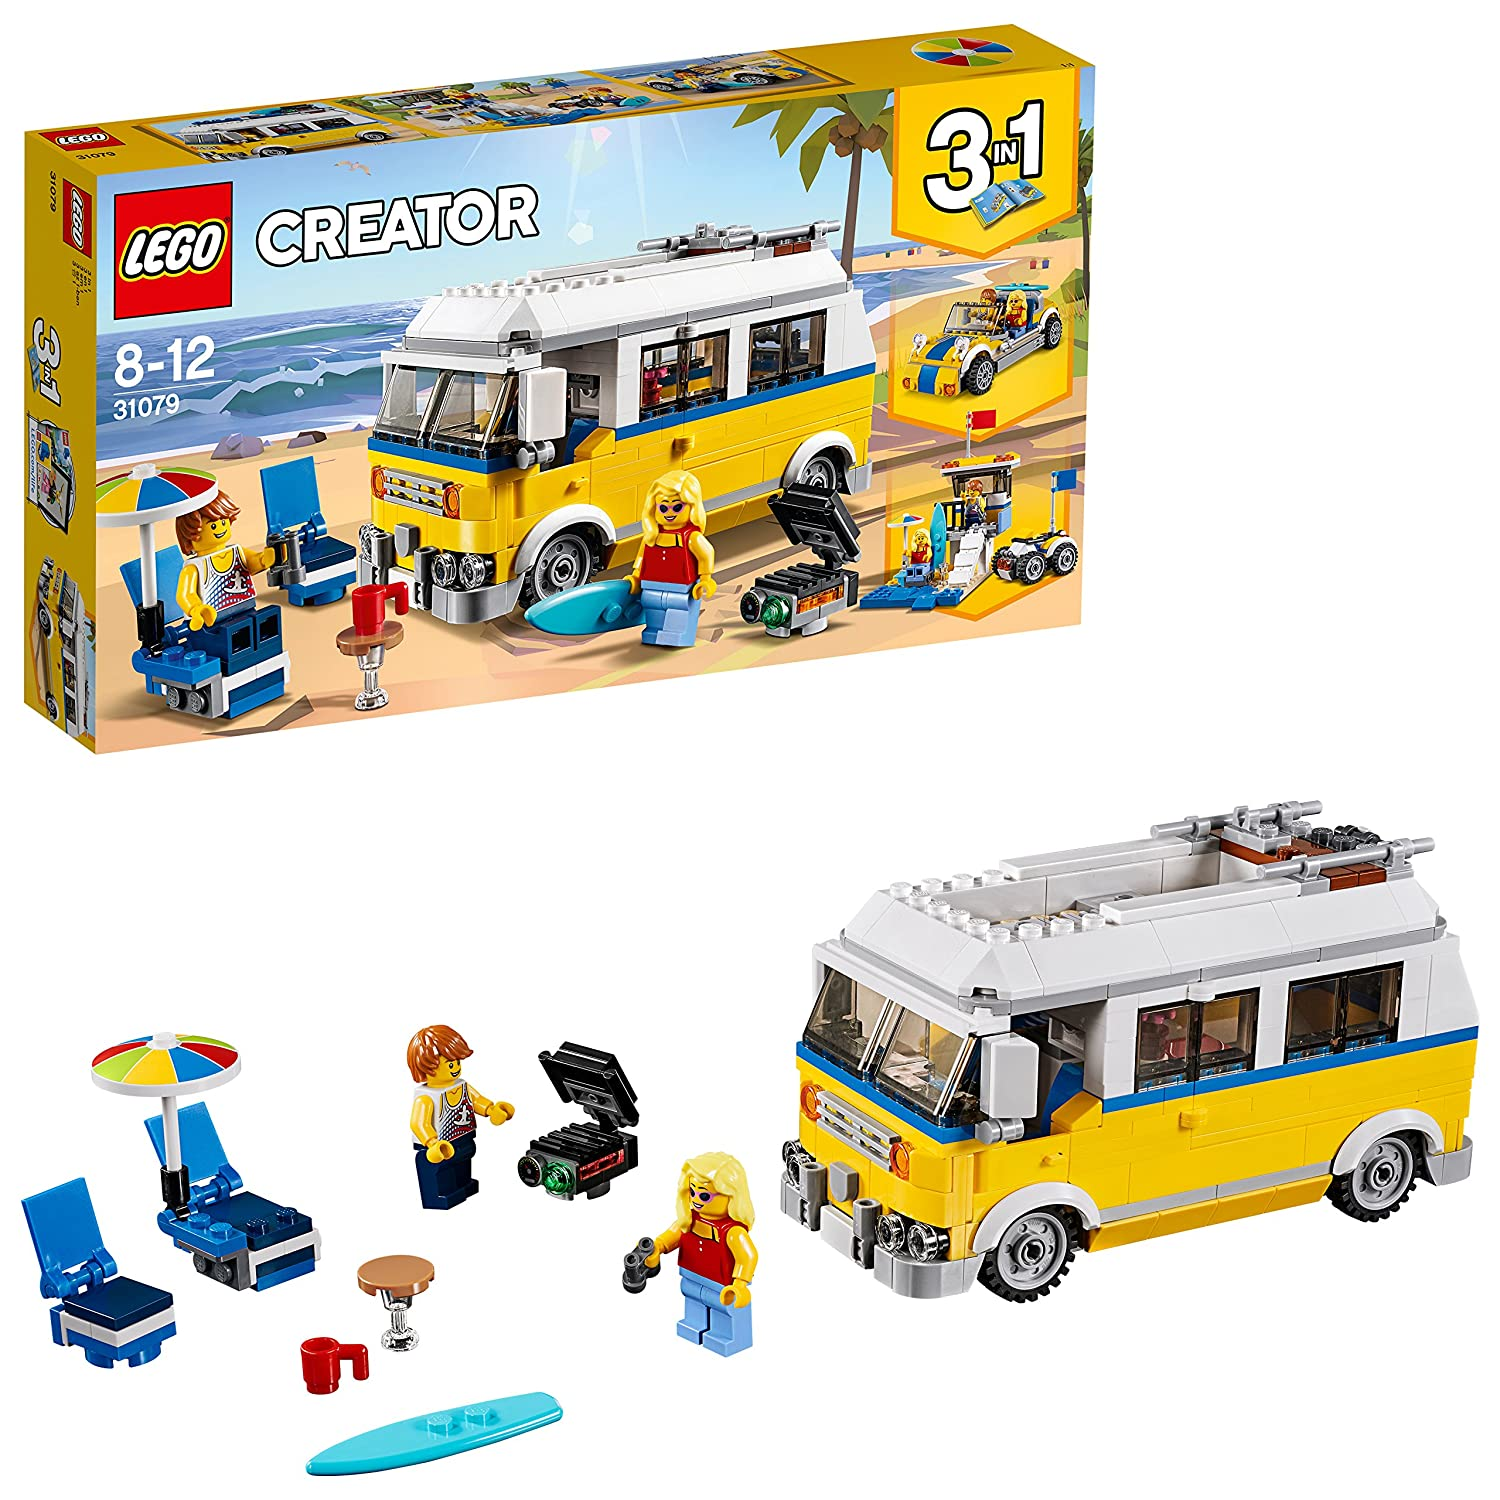 LEGO 31079 CREATOR Sunshine Surfer Van, Beachy Buggy, Lifeguard Tower Roof 3 in 1 Model, Toy Car for Kids